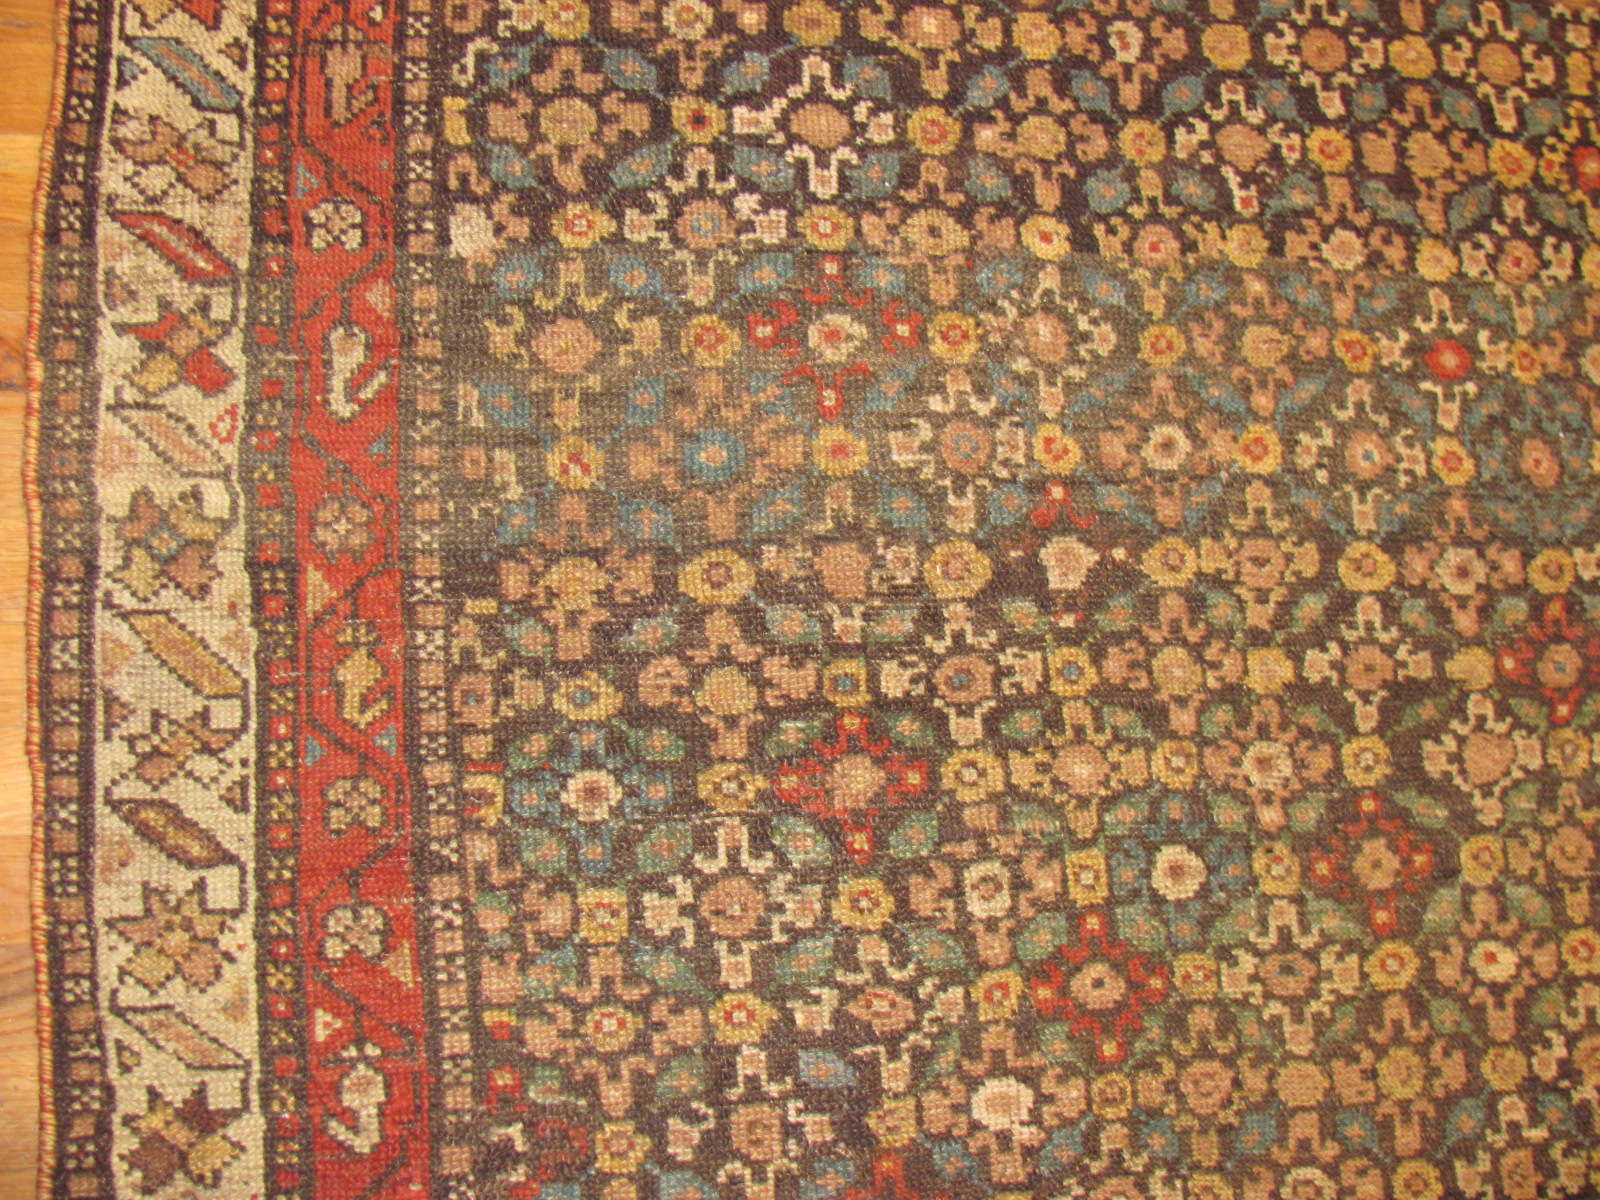 24499 antique persian kurdish rug 4,2 x 8,8 -2